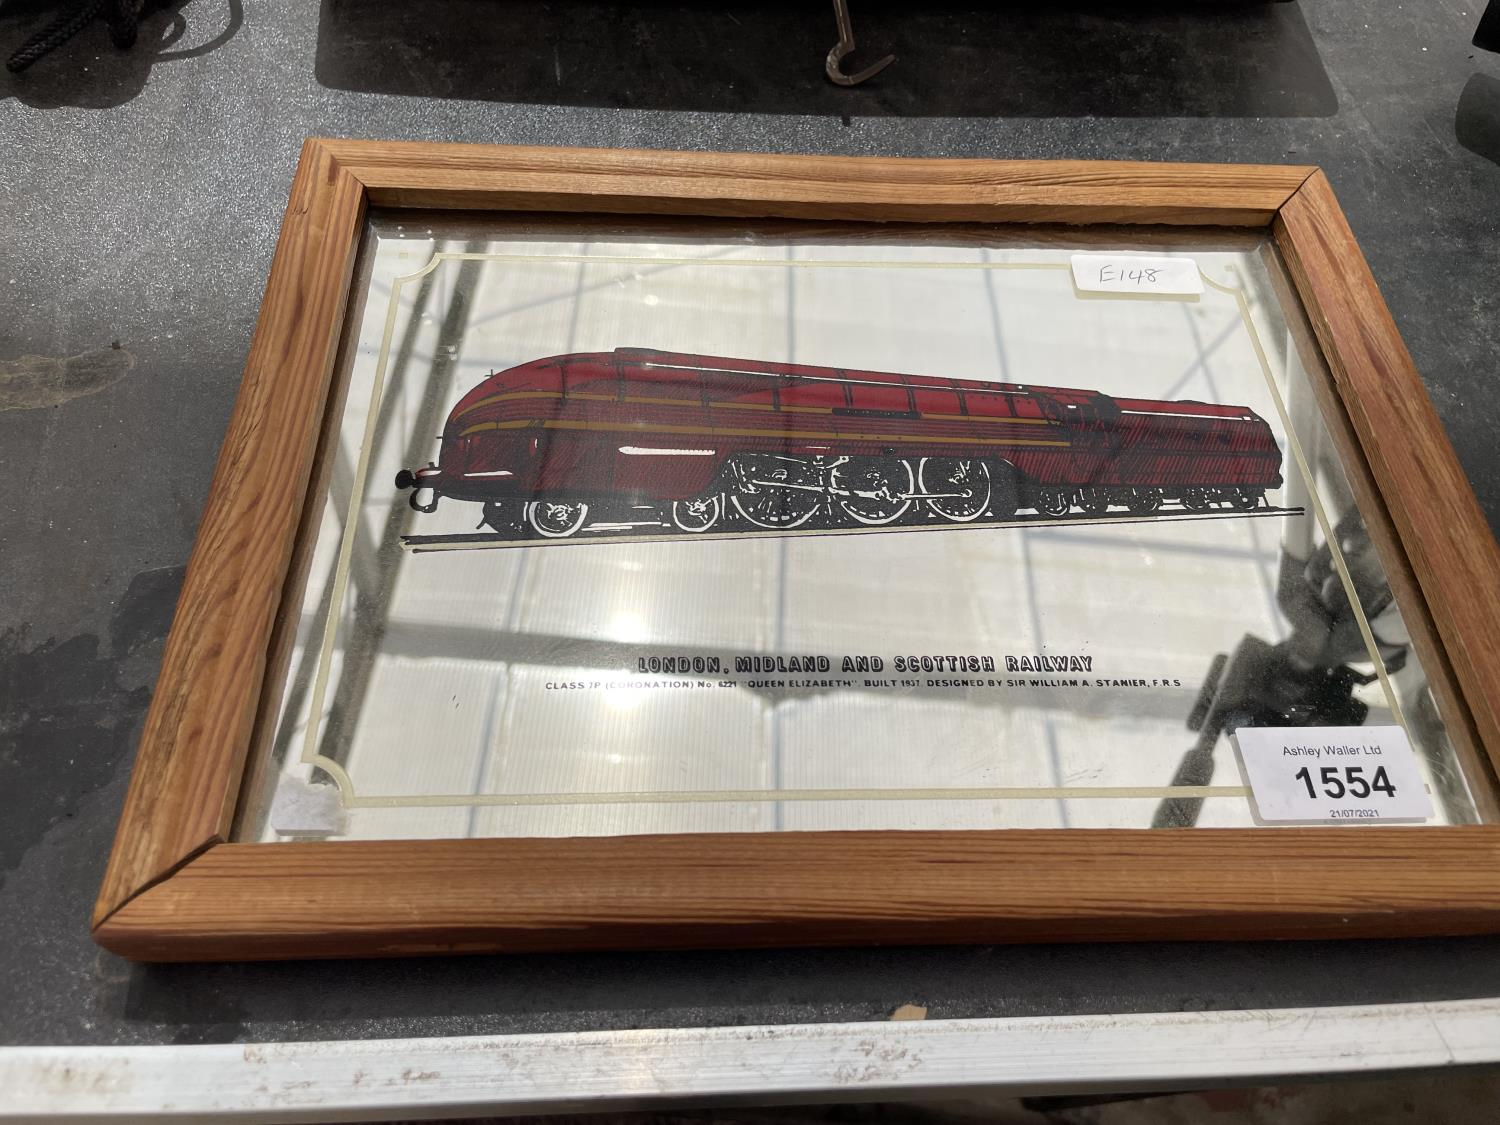 A LONDON MIDLAND AND SCOTTISH RAILWAY ADVERTISING MIRROR - Image 2 of 2